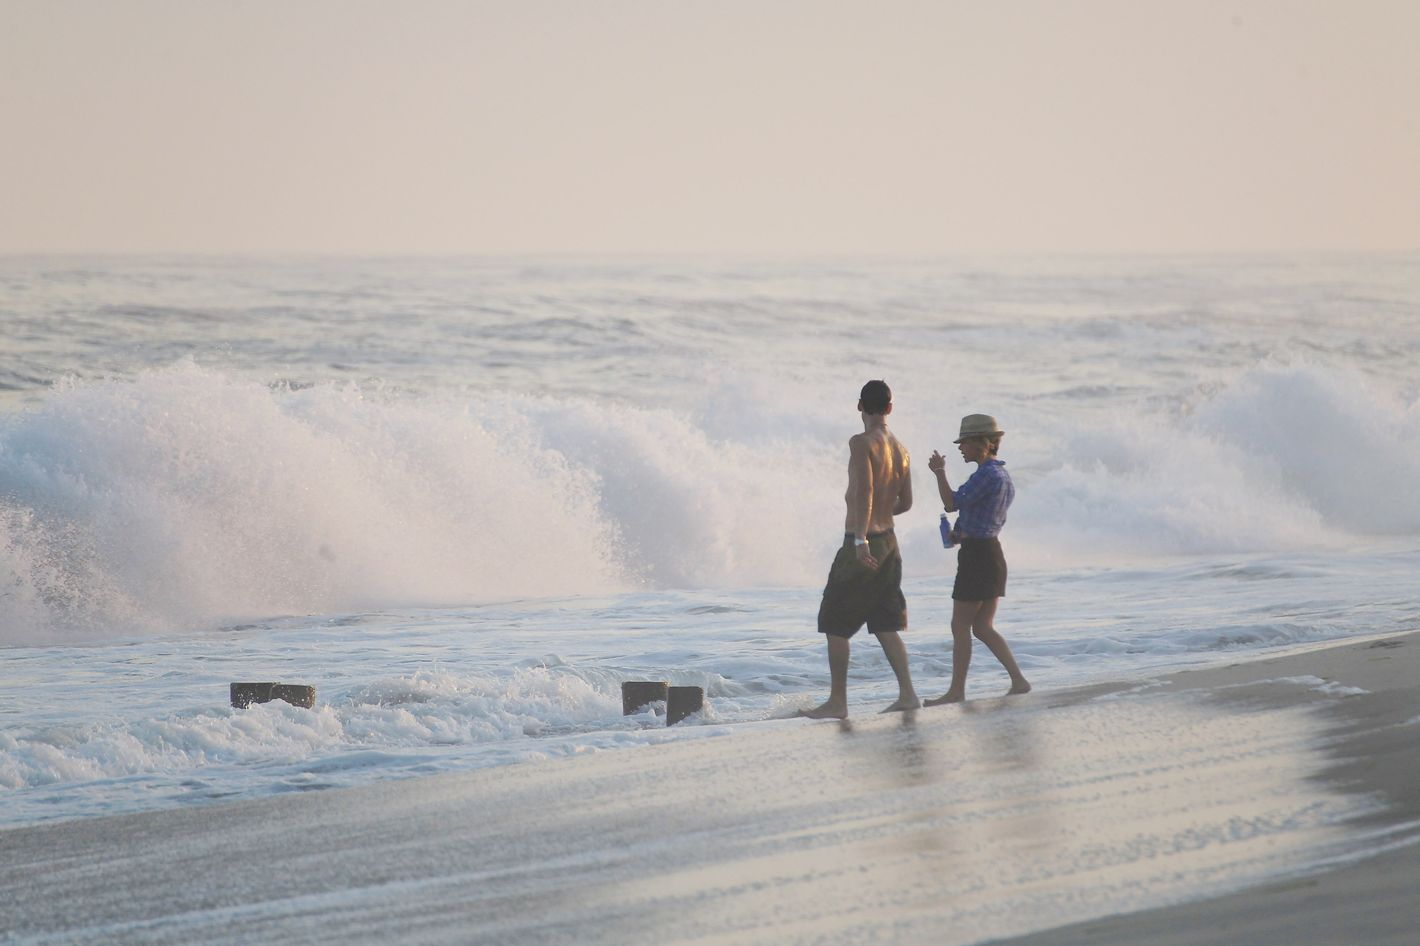 Beachgoers enjoy the huge waves prior to the arrival of Hurricane Irene on August 26, 2011 in Southampton, New York.